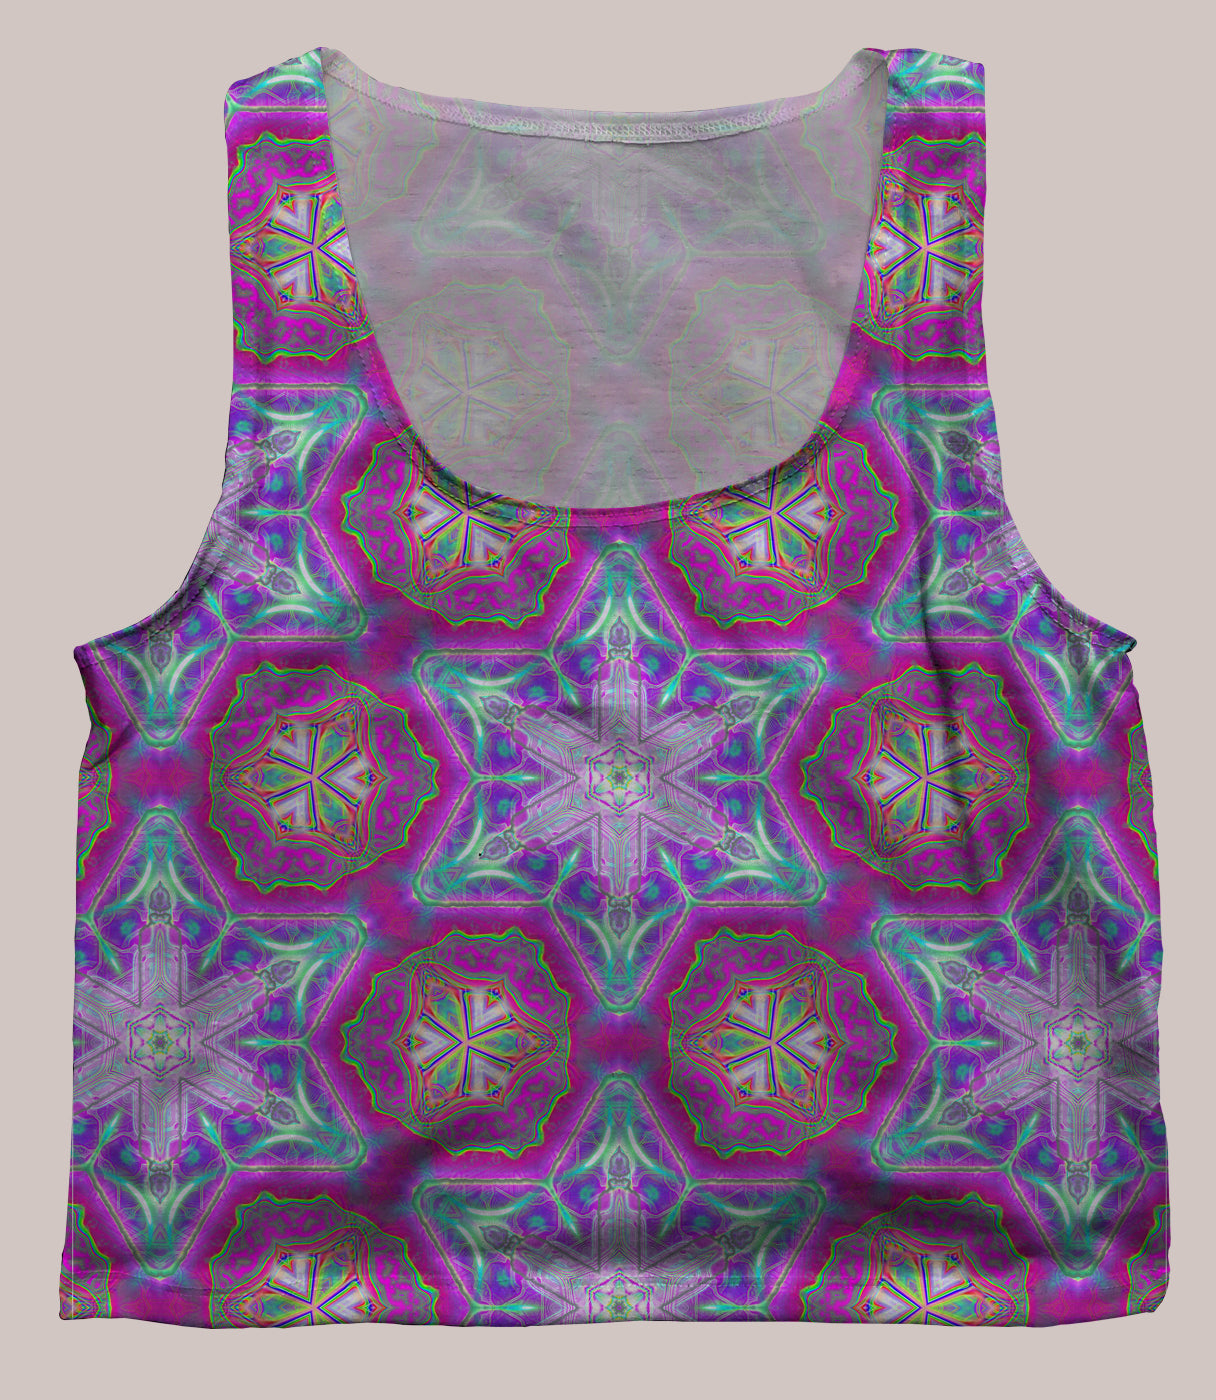 Entheoelectric Crop Top - Tetramode® | Psy Styles. Men & Womens Psychedelic Tops & Bottoms